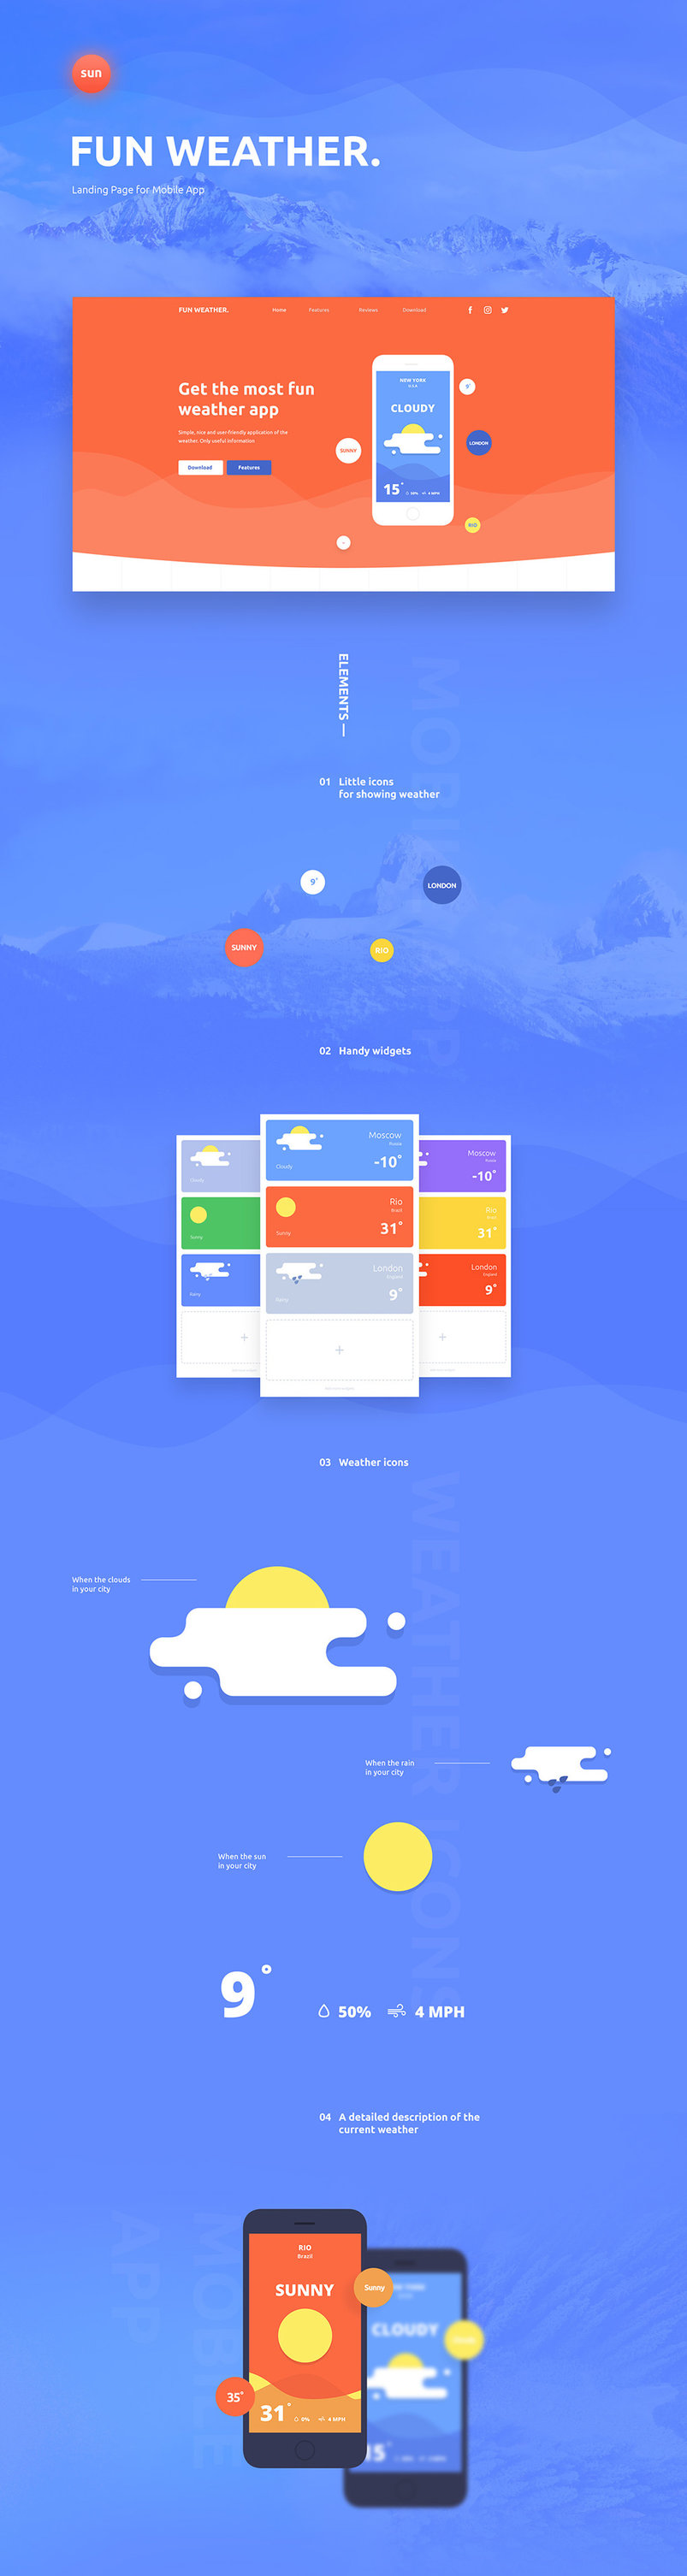 fun-weather-landing-page-template-2